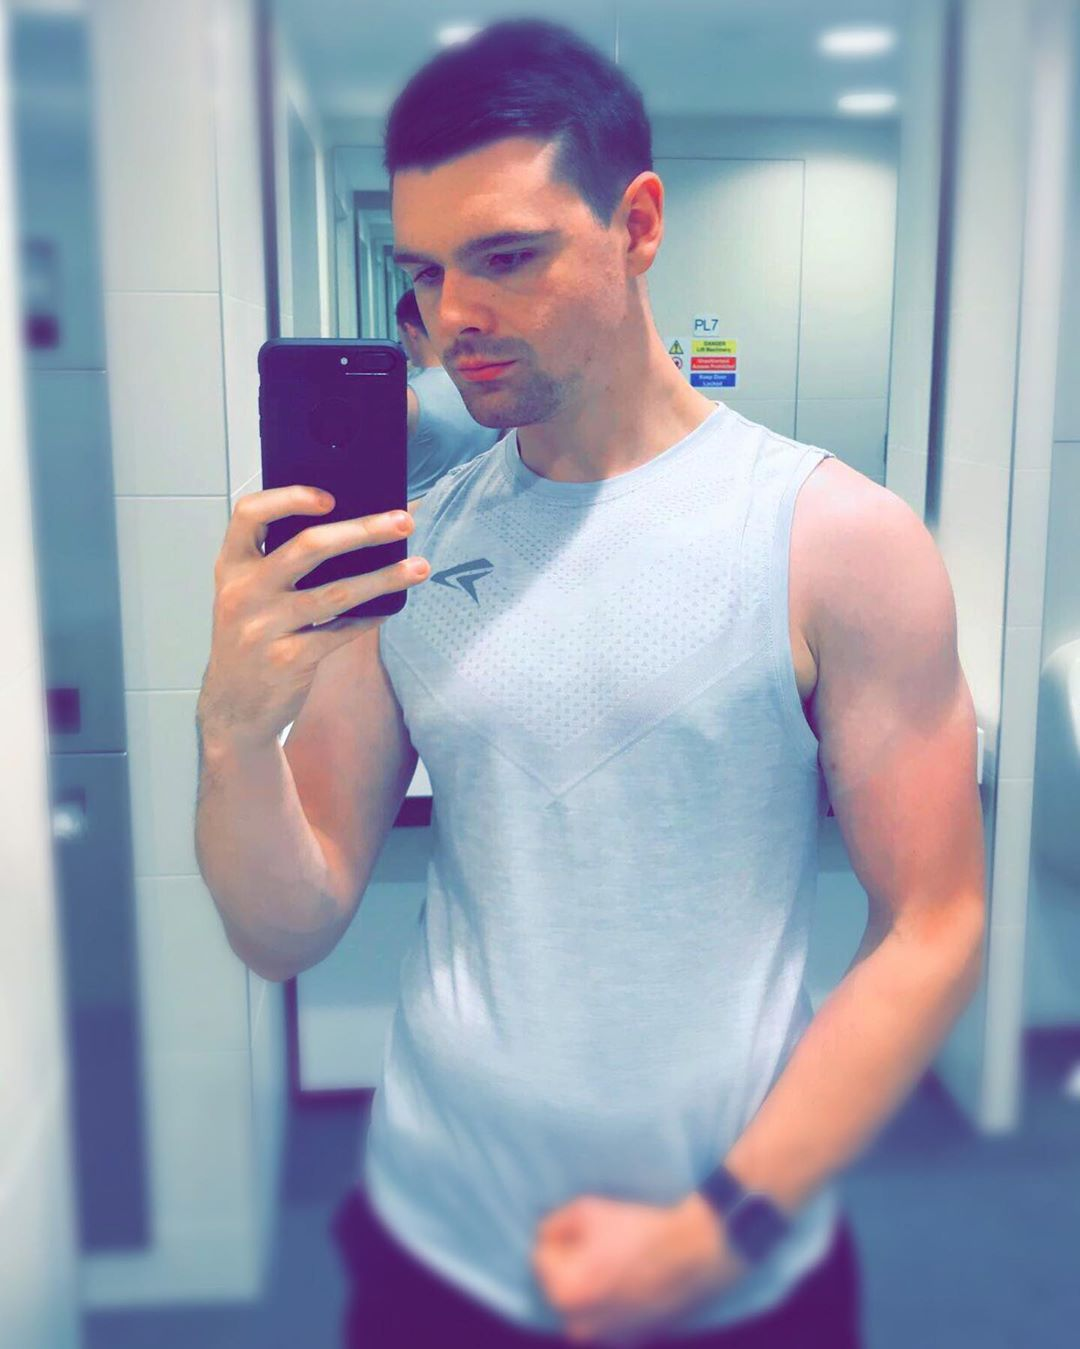 12hour Night Shift Done Time To Hit The Gym For Some Deadlifts